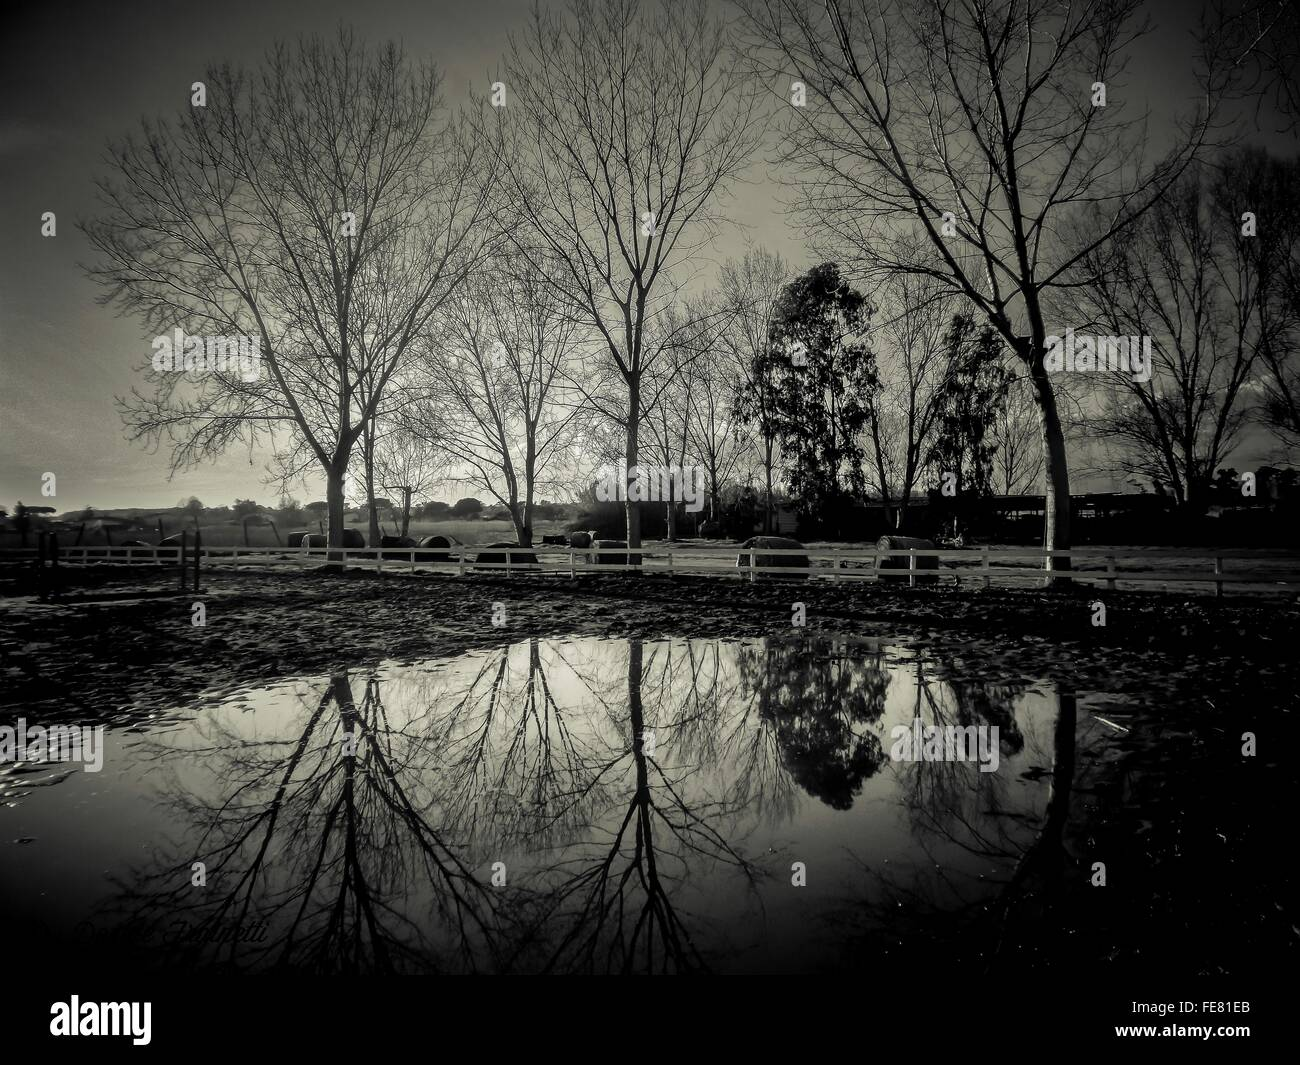 Reflection Of Trees In Puddle Near Farm Fence - Stock Image